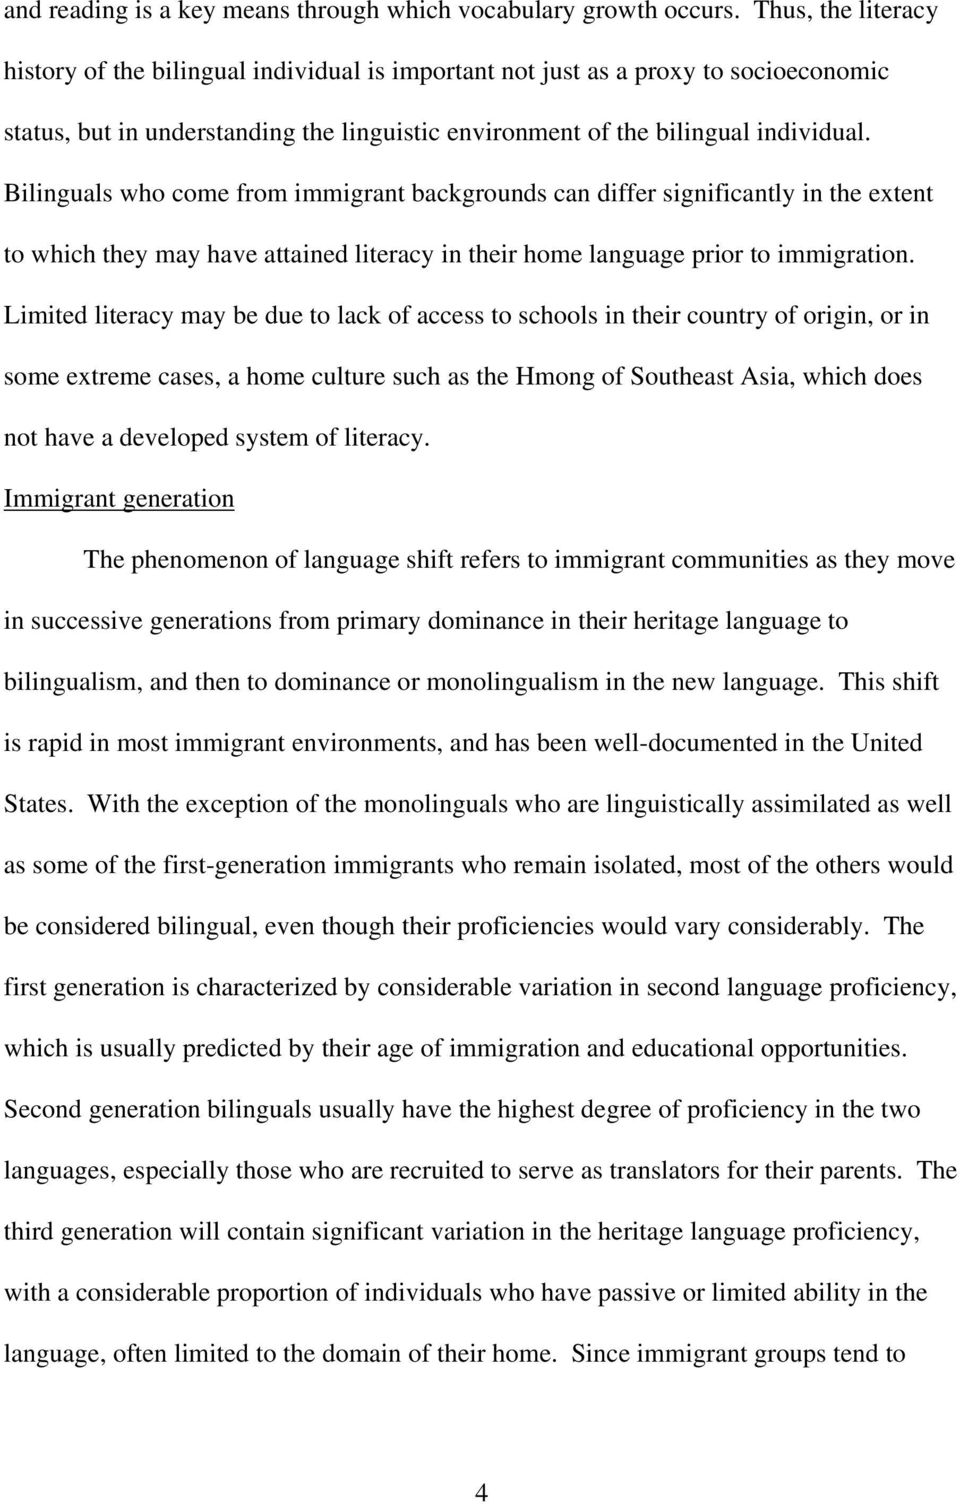 Bilinguals who come from immigrant backgrounds can differ significantly in the extent to which they may have attained literacy in their home language prior to immigration.